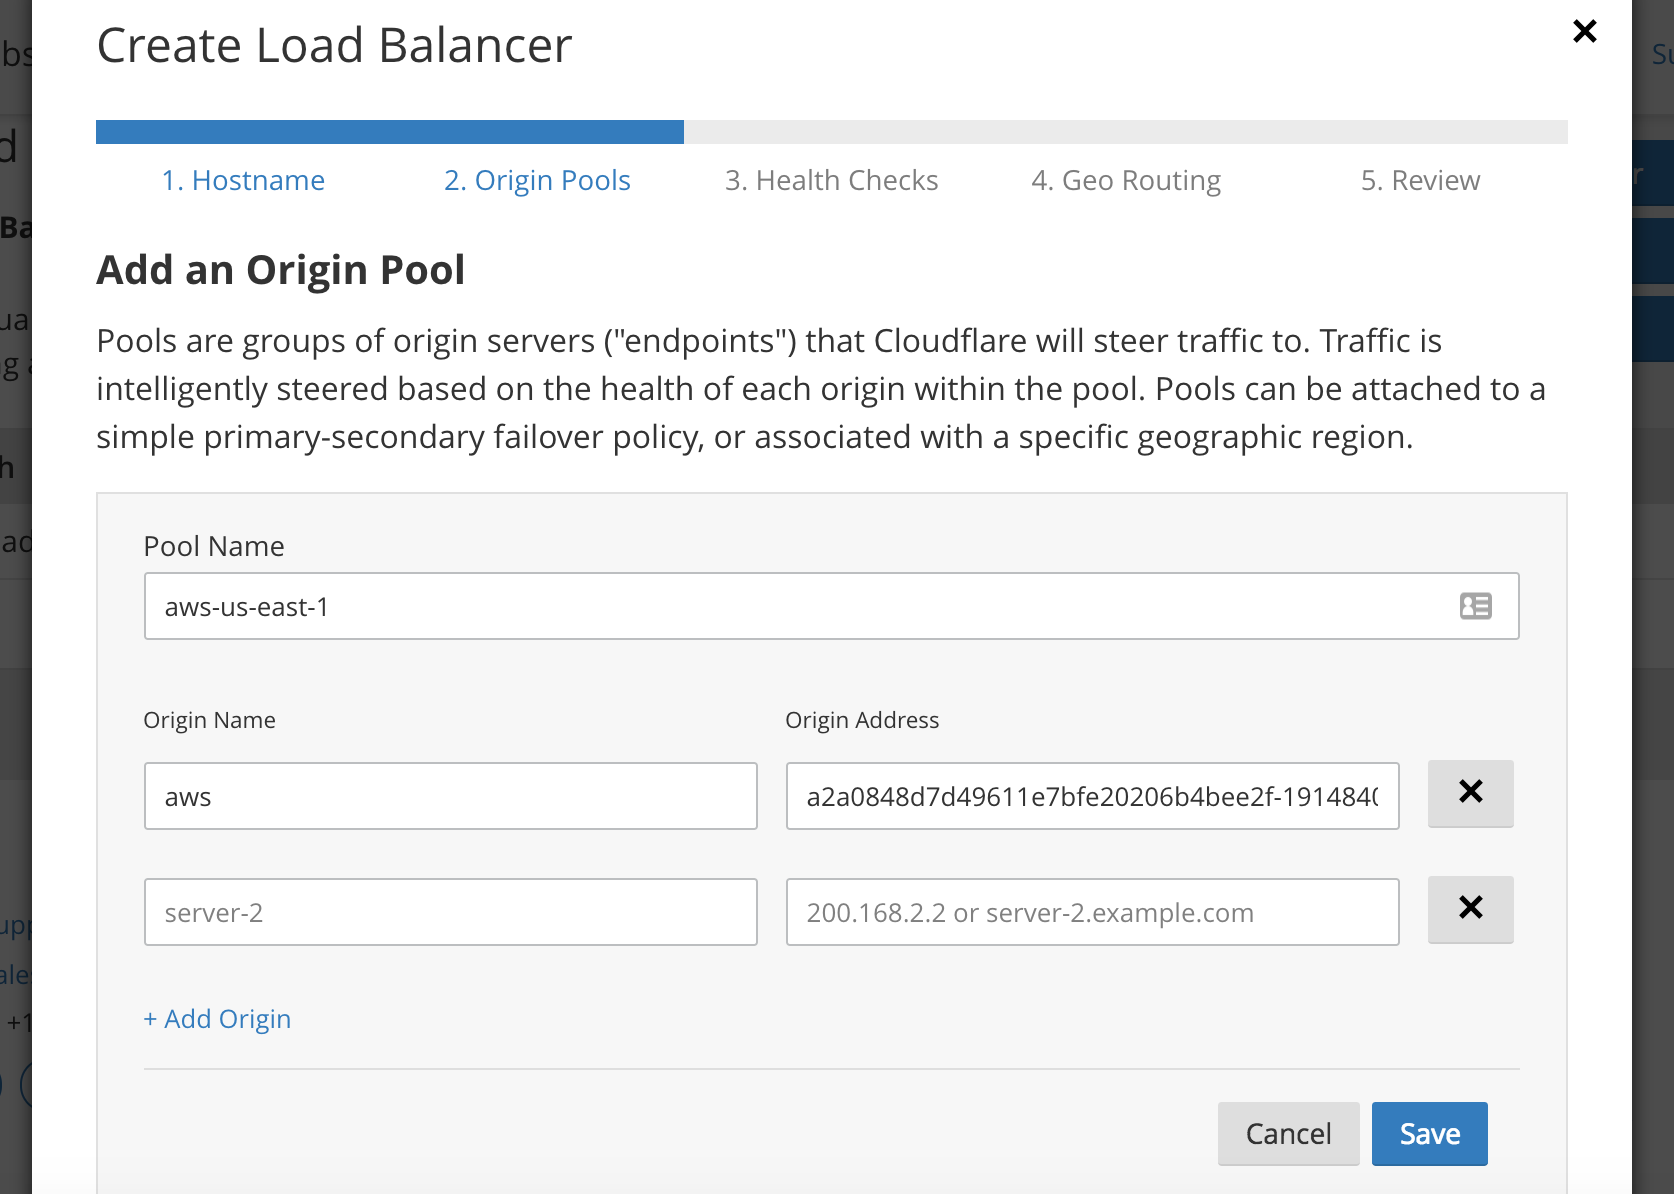 Old URL: https://support.cloudflare.com/hc/article_attachments/115003992412/AWS_Origin_Pool.png Article IDs: 115003384591 | Using Kubernetes on GKE and AWS with Cloudflare Load Balancer